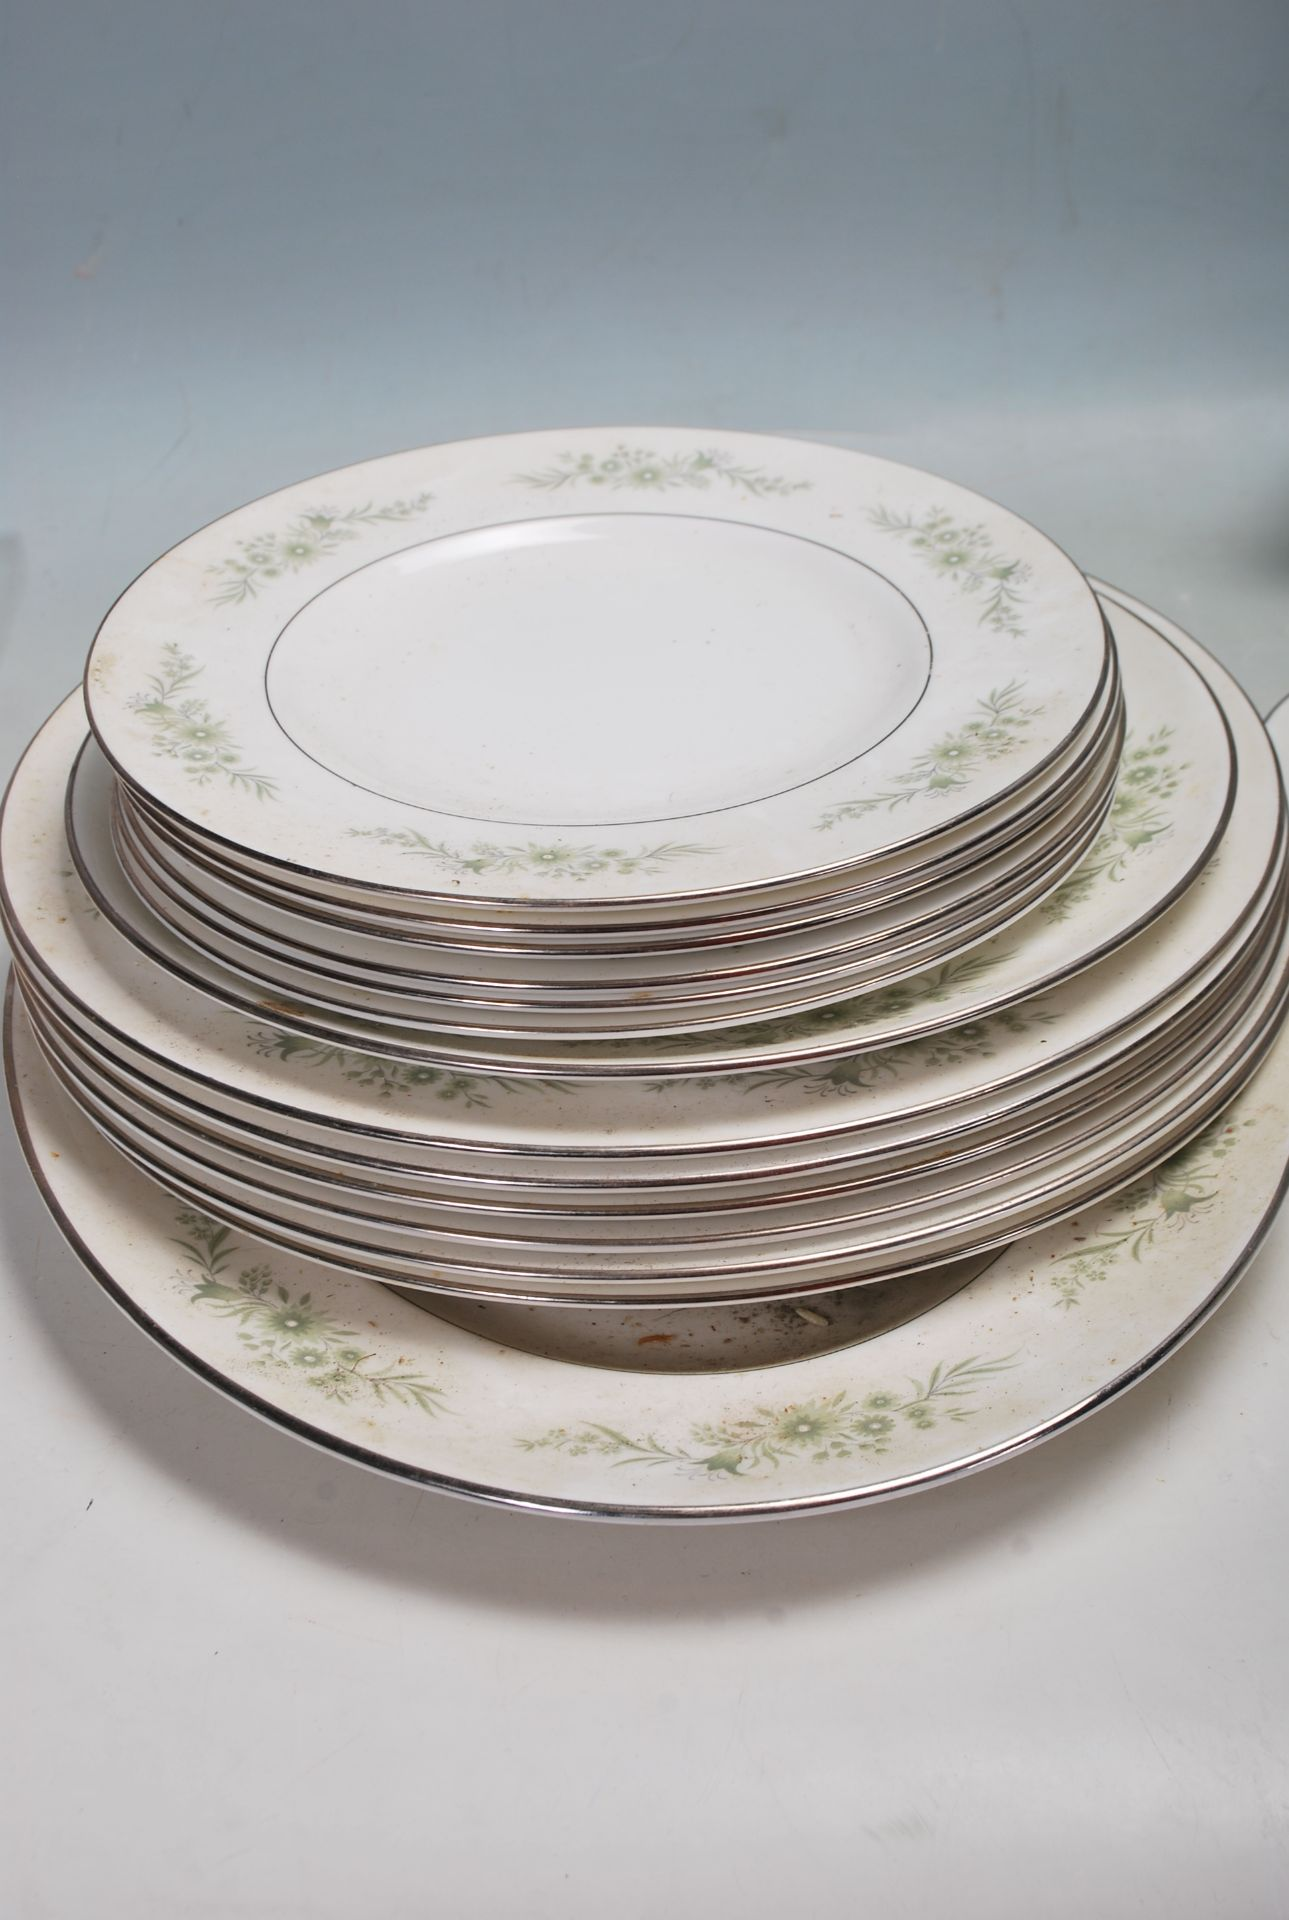 COLLECTION OF LATE 20TH CENTURY WEDGWOOD FINE BONE CHINA - Image 8 of 9